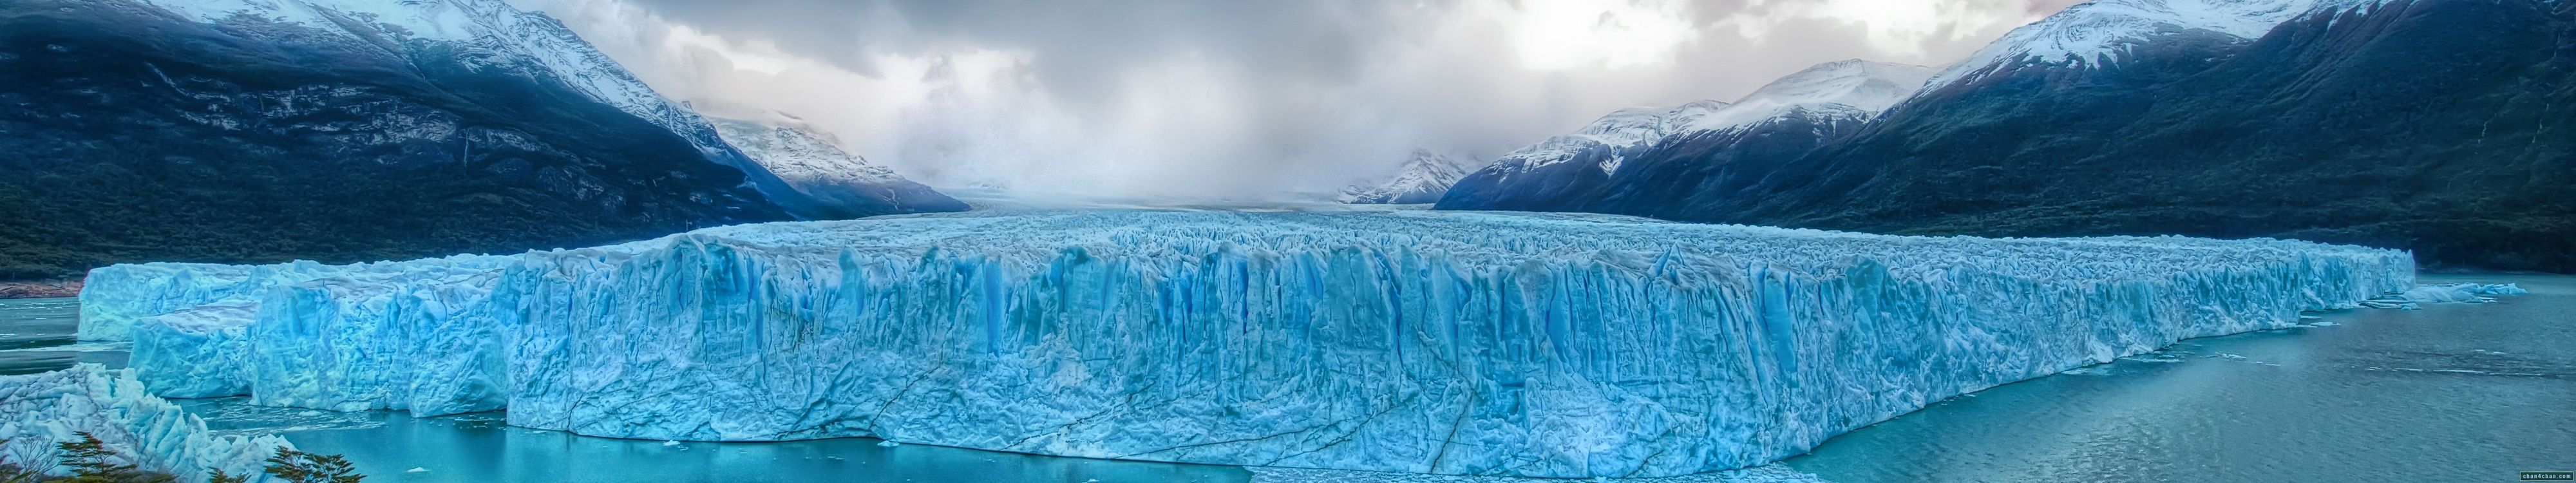 Photos for free hills, iceberg, landscapes - to the desktop